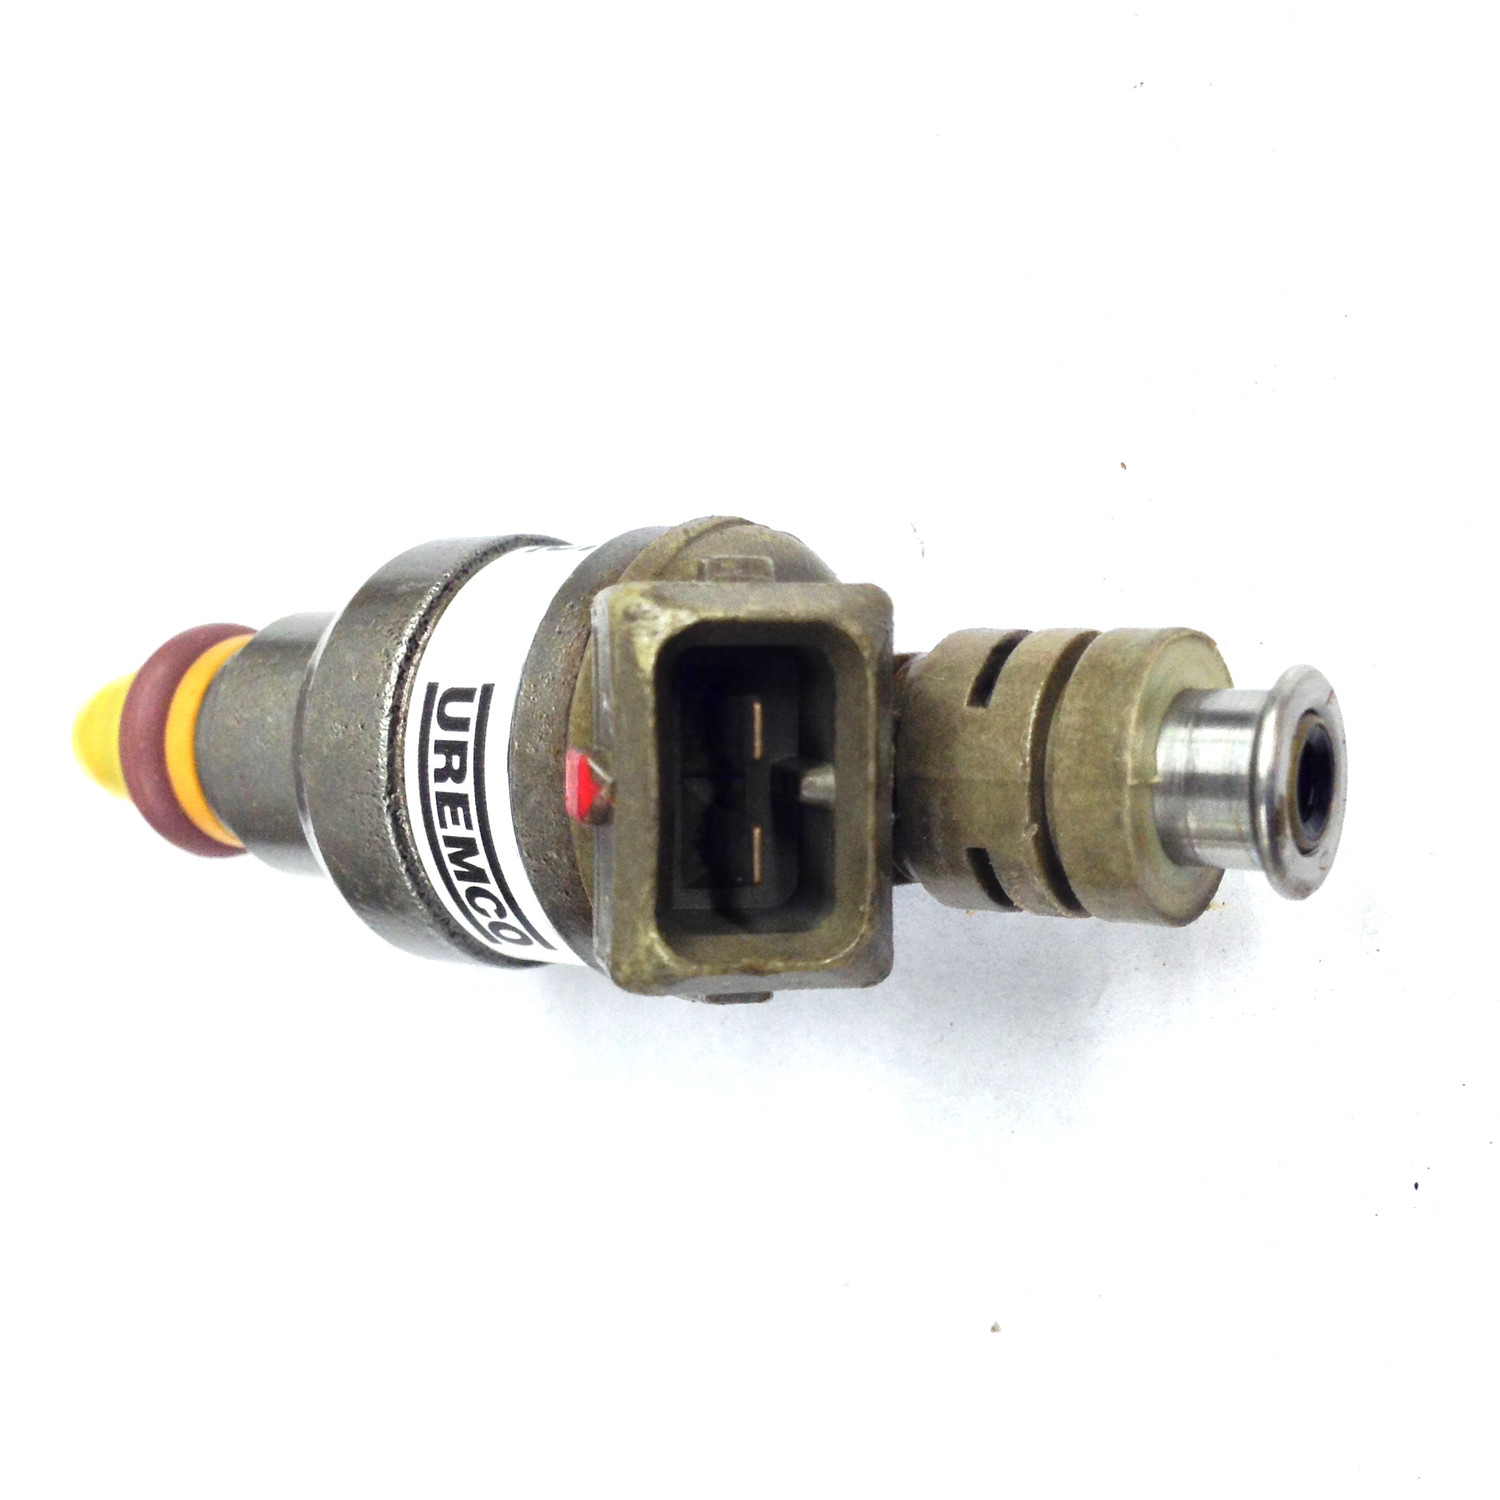 UNITED REMANUFACTURING CO - Fuel Injector - URC 5096